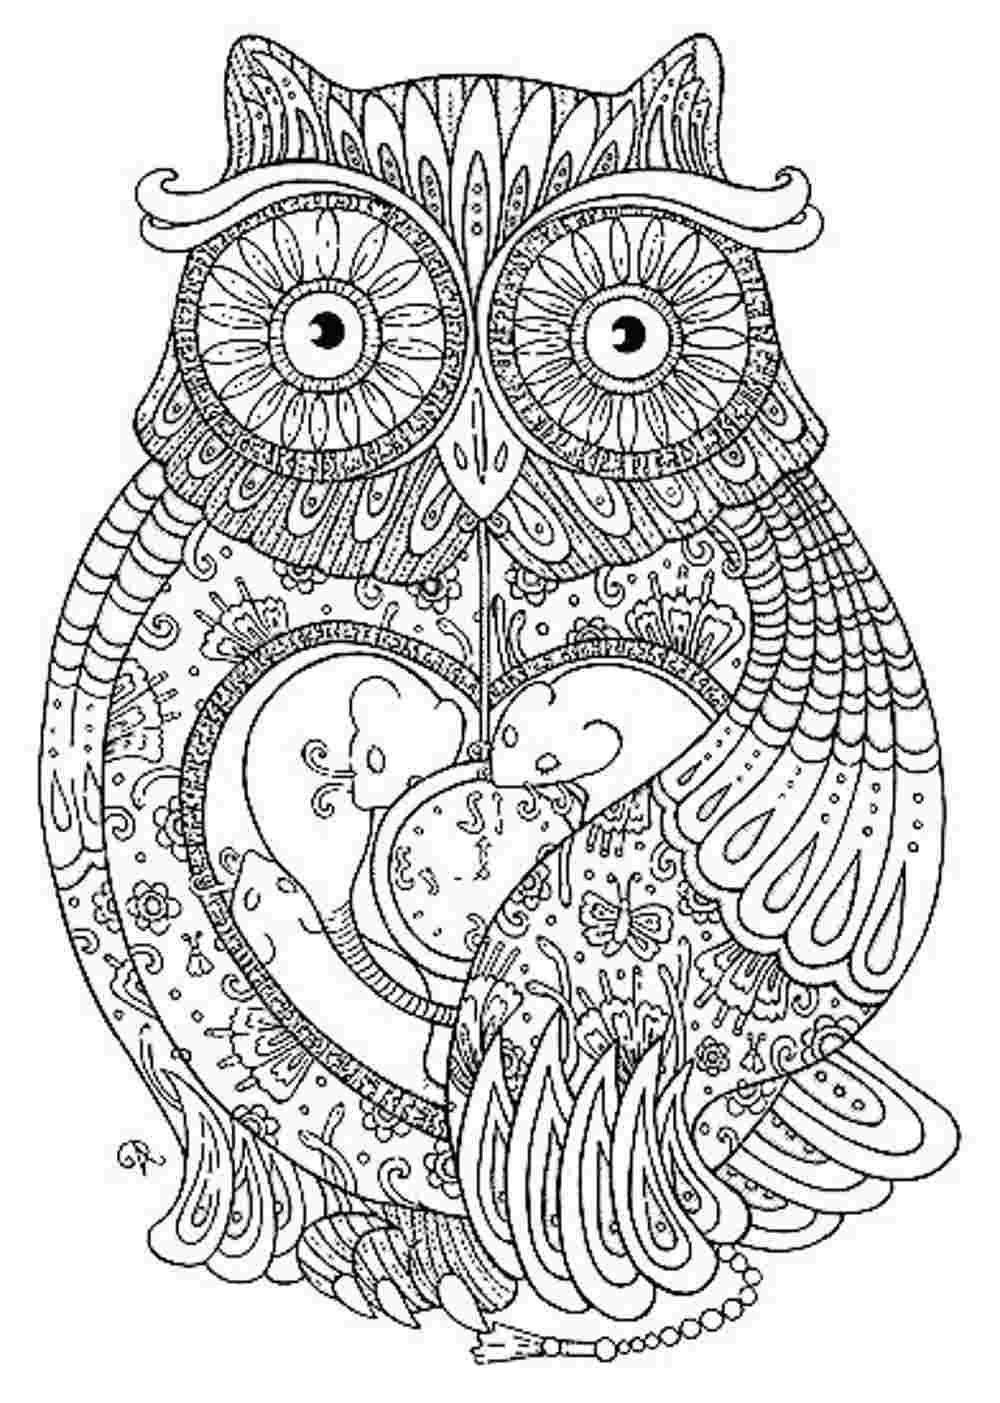 Animal Mandala Coloring Pages To Download And Print For Free | Craft - Free Mandalas To Colour In Printable